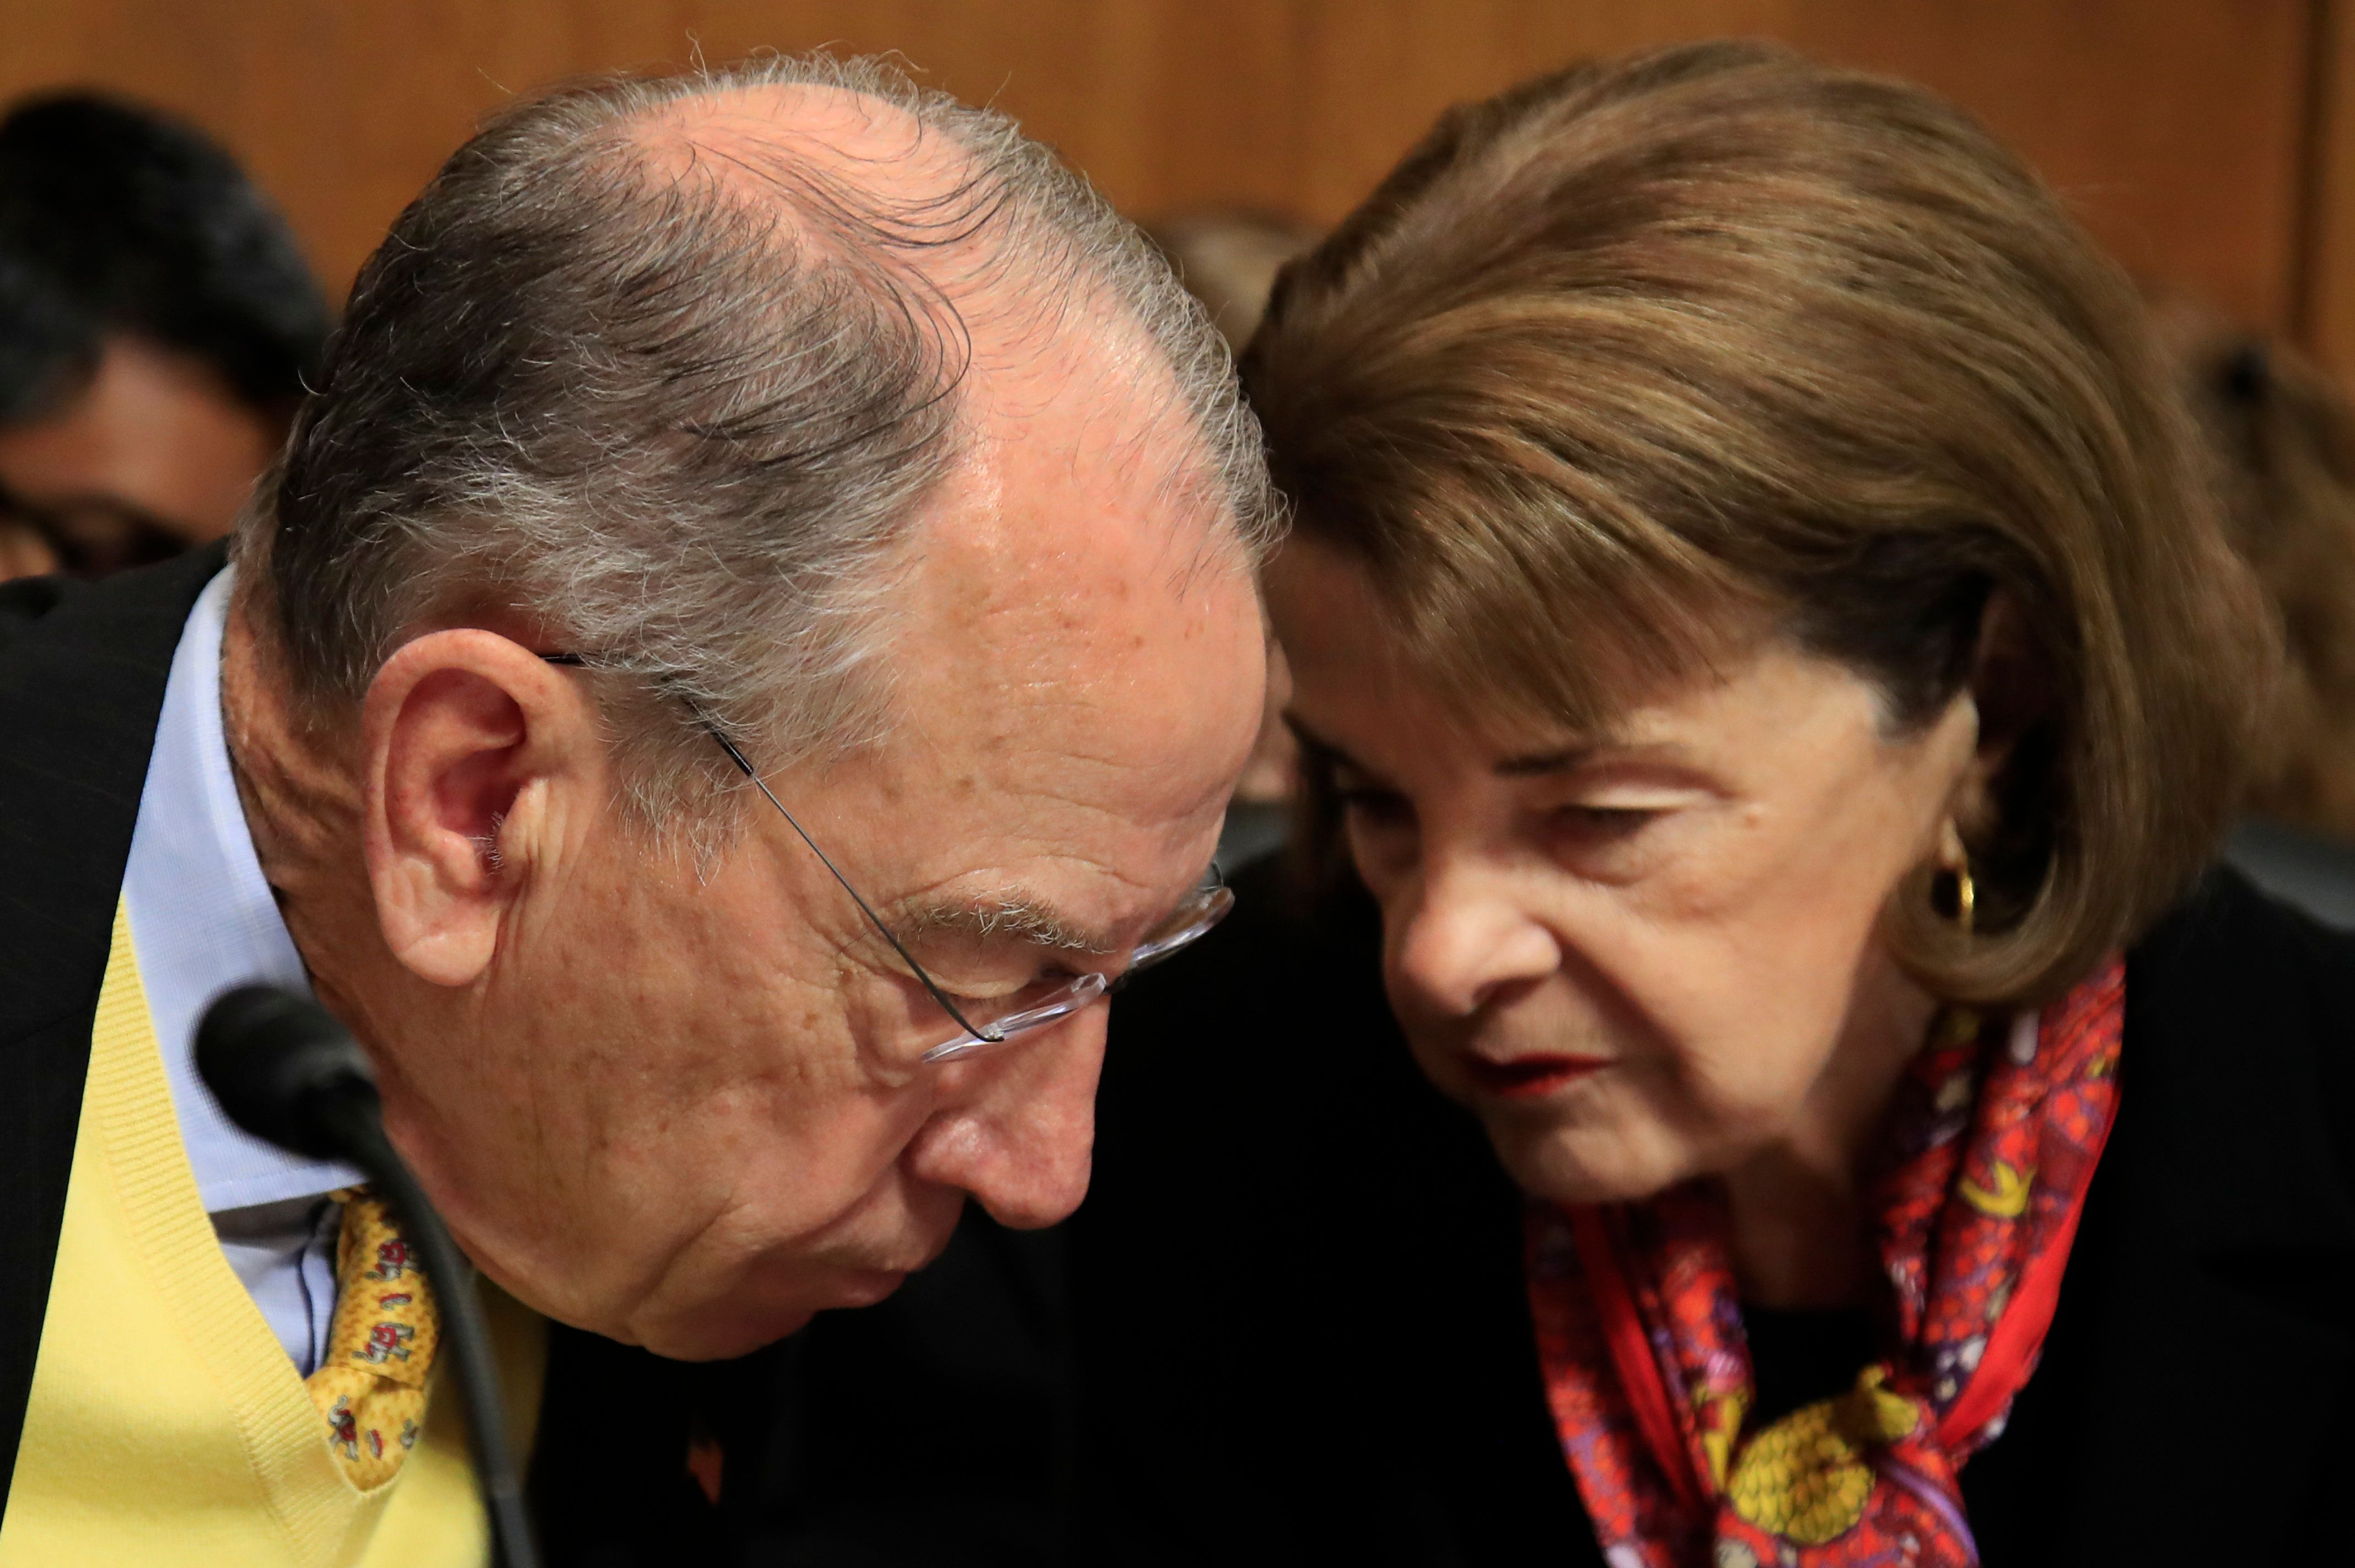 Senate Judiciary Committee Chairman Chuck Grassley of Iowa confers with ranking member Sen. Dianne Feinstein, D-Calif., during a hearing on 'Oversight of U.S. Customs and Border Protection' on Capitol Hill in Washington, Tuesday, Dec. 11, 2018. (AP Photo/Manuel Balce Ceneta)